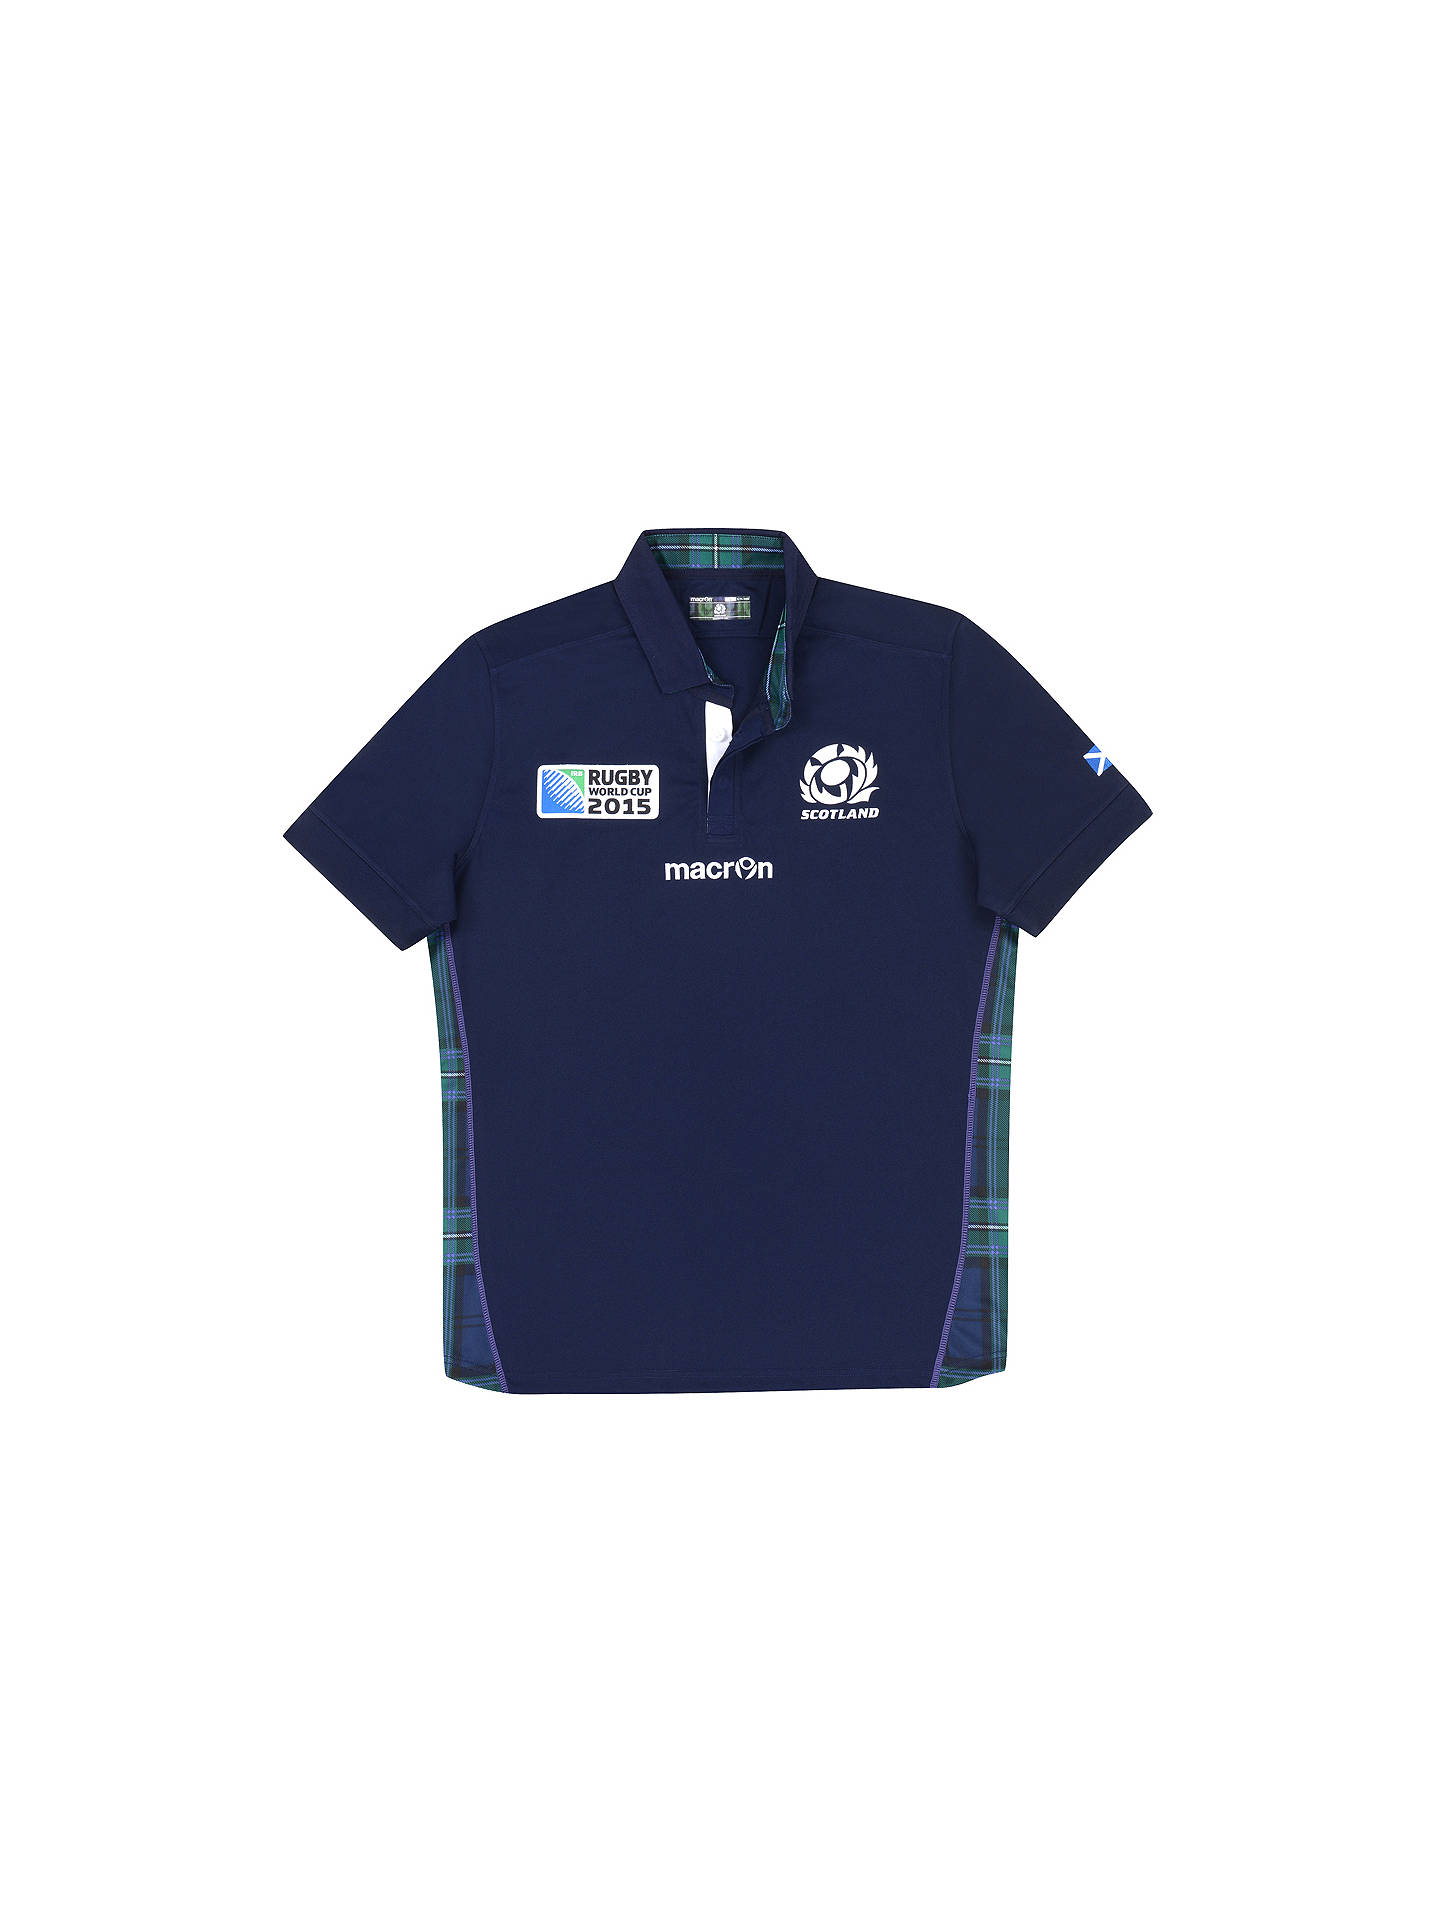 28aac4cb3b2 Buy Macron Scotland Rugby World Cup 2015 Rugby Shirt, Navy, S Online at  johnlewis